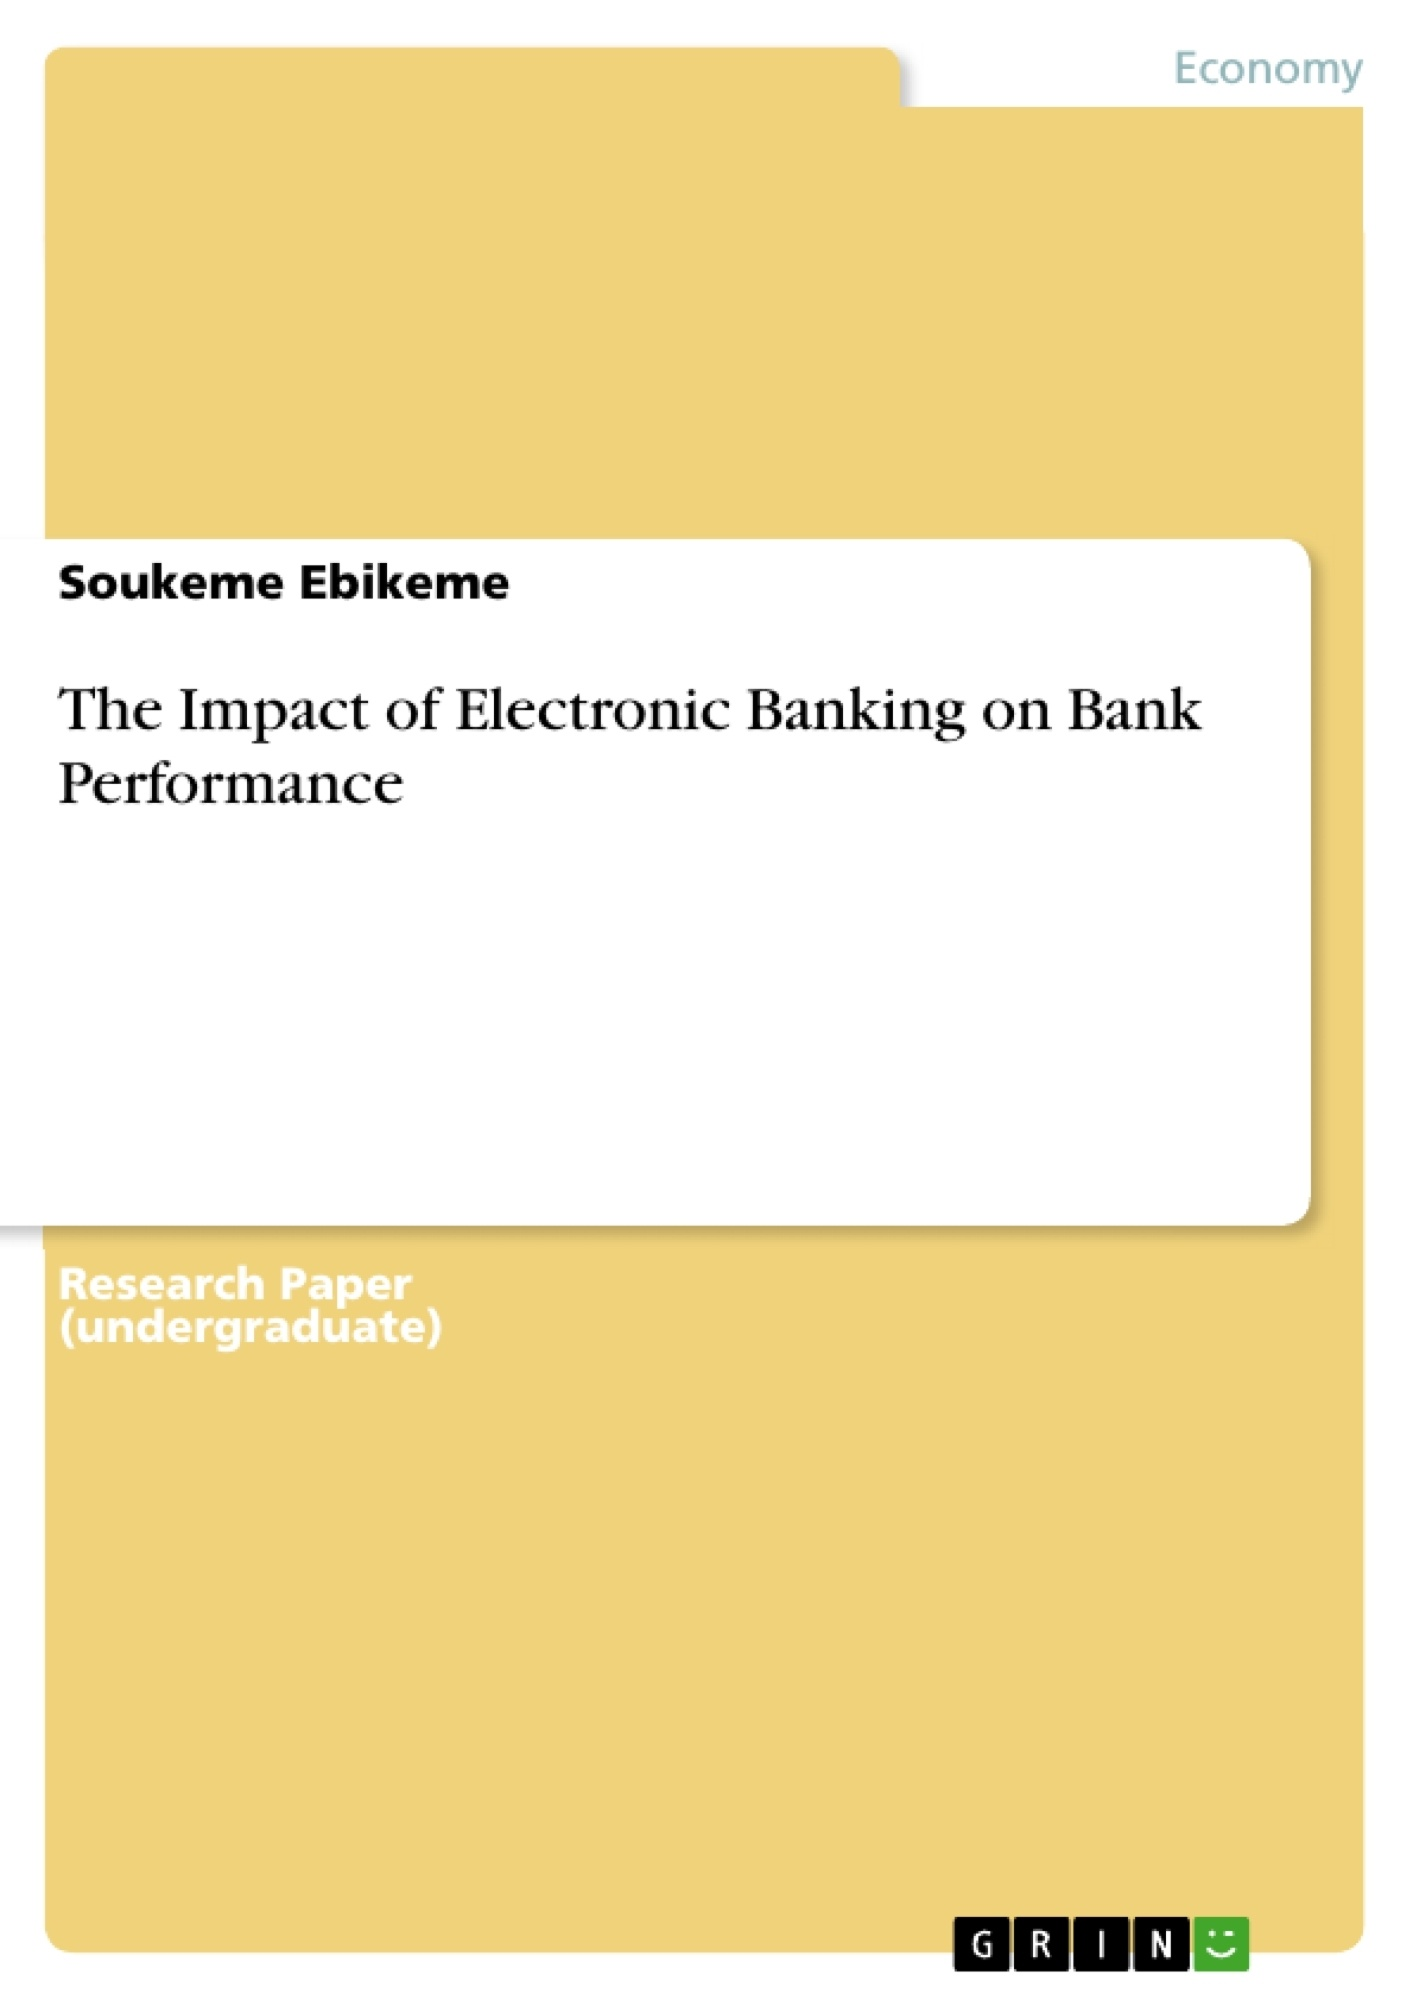 Title: The Impact of Electronic Banking on Bank Performance